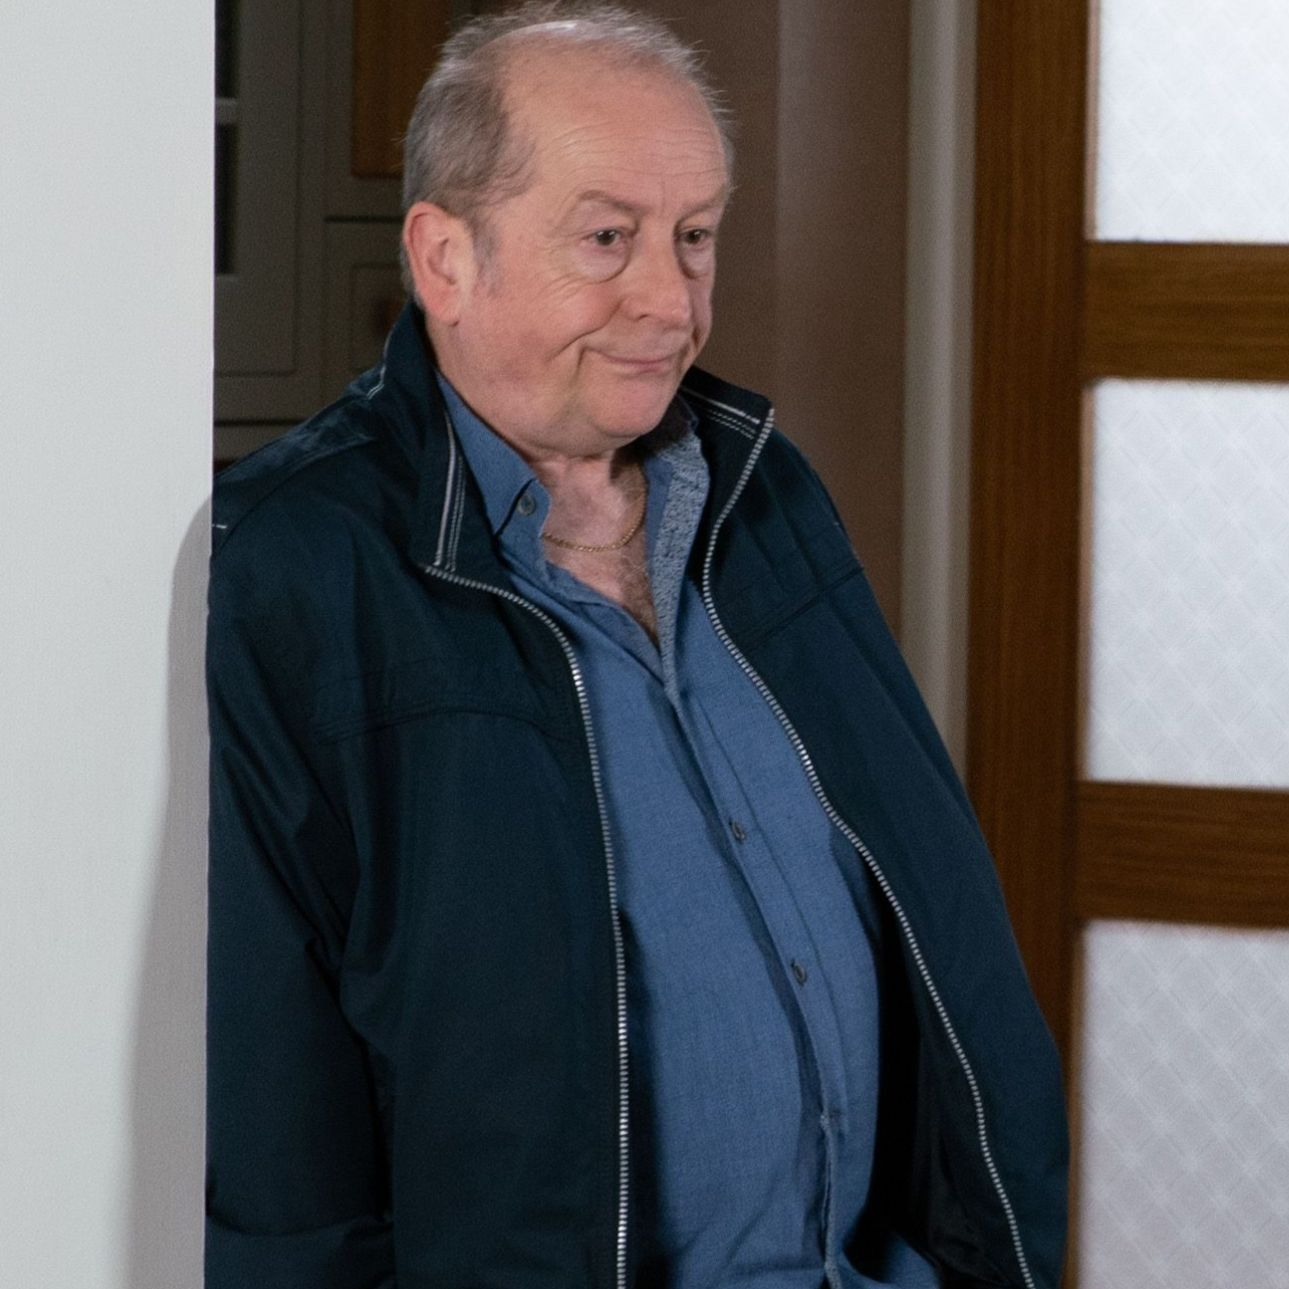 Coronation Street's Geoff Metcalfe pretends he could have cancer in shock new plan